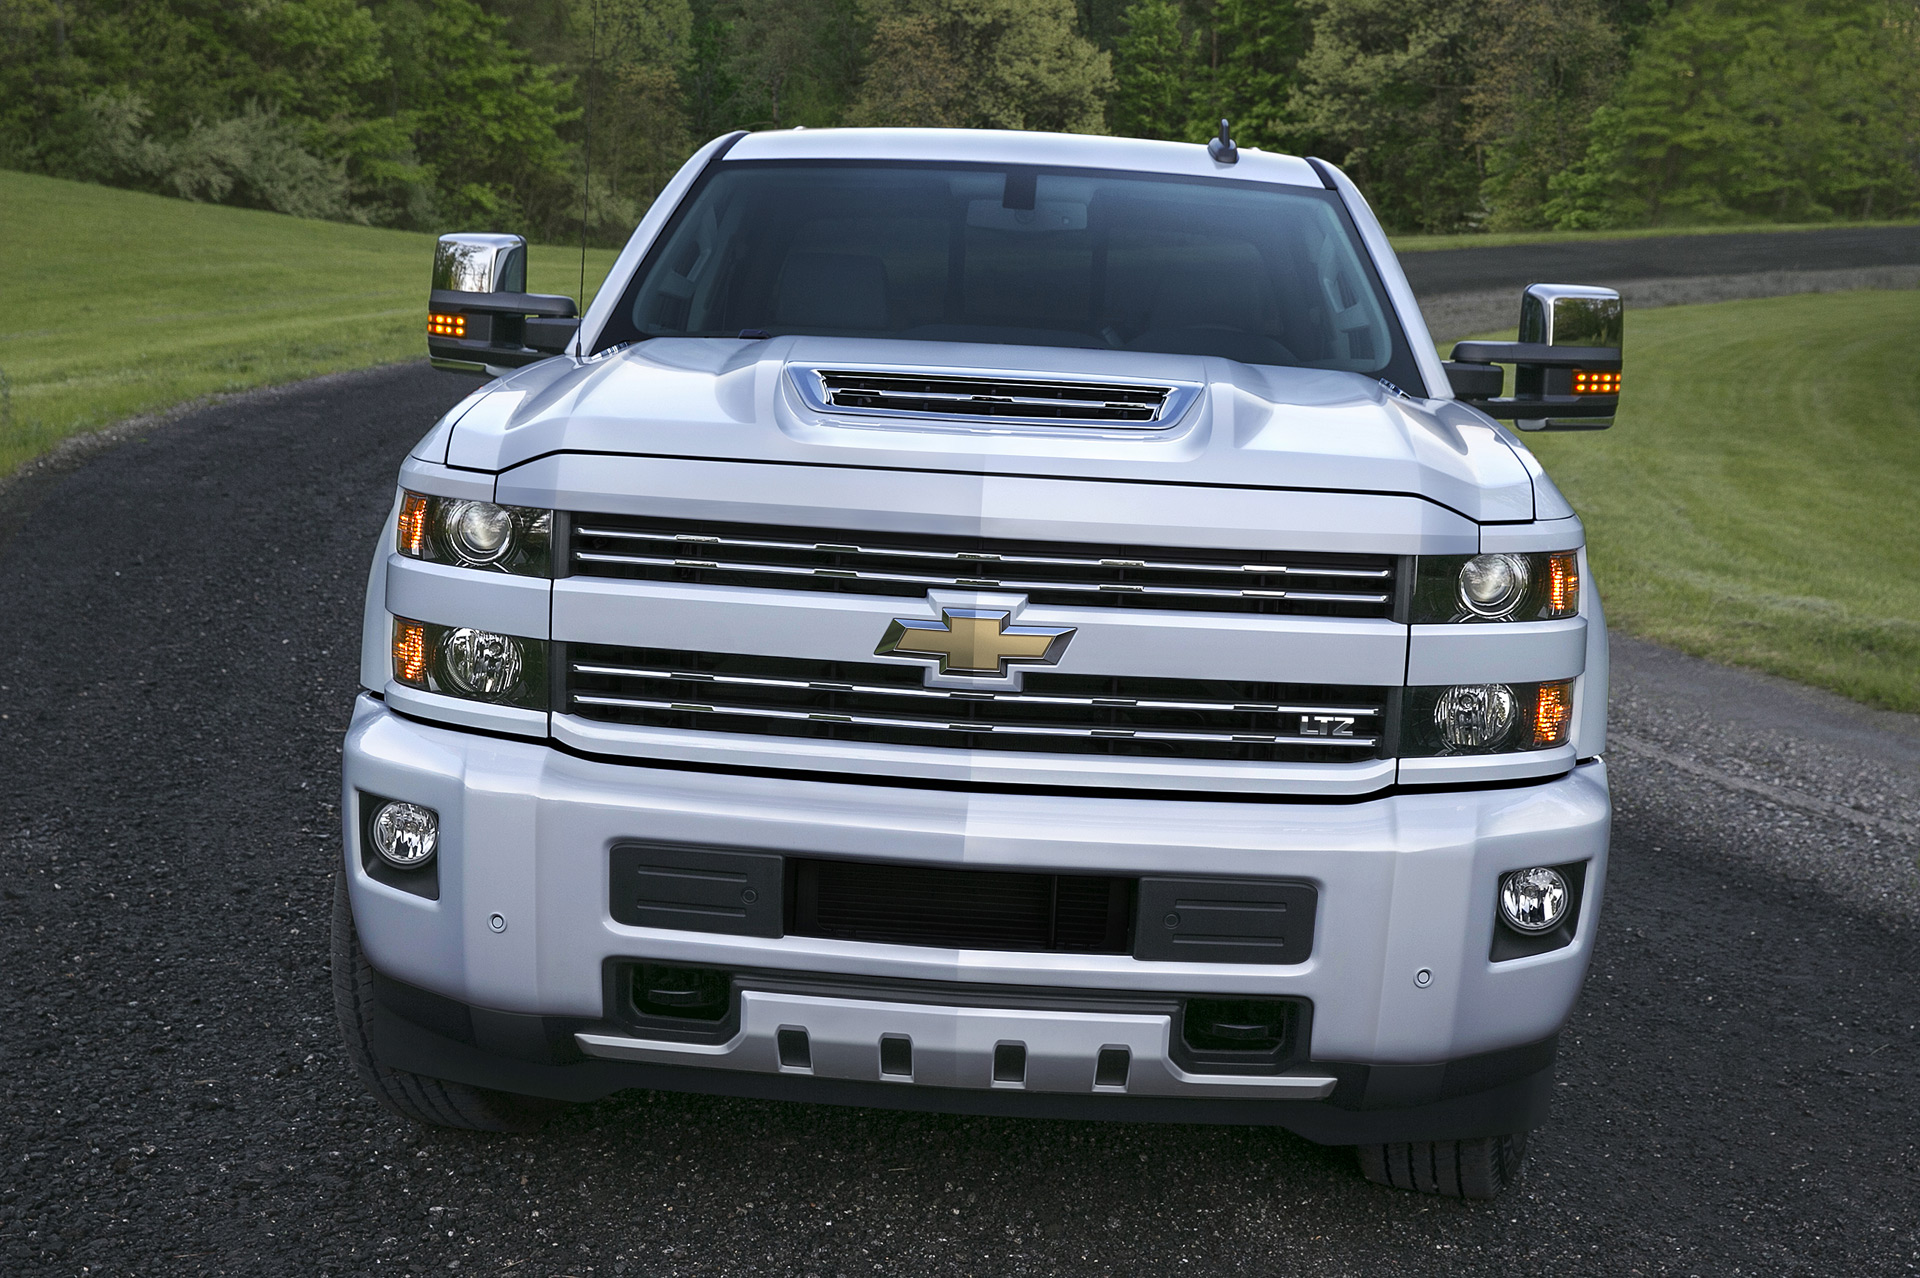 Chevrolet Silverado Hd H on Chevy Silverado Front End Diagram